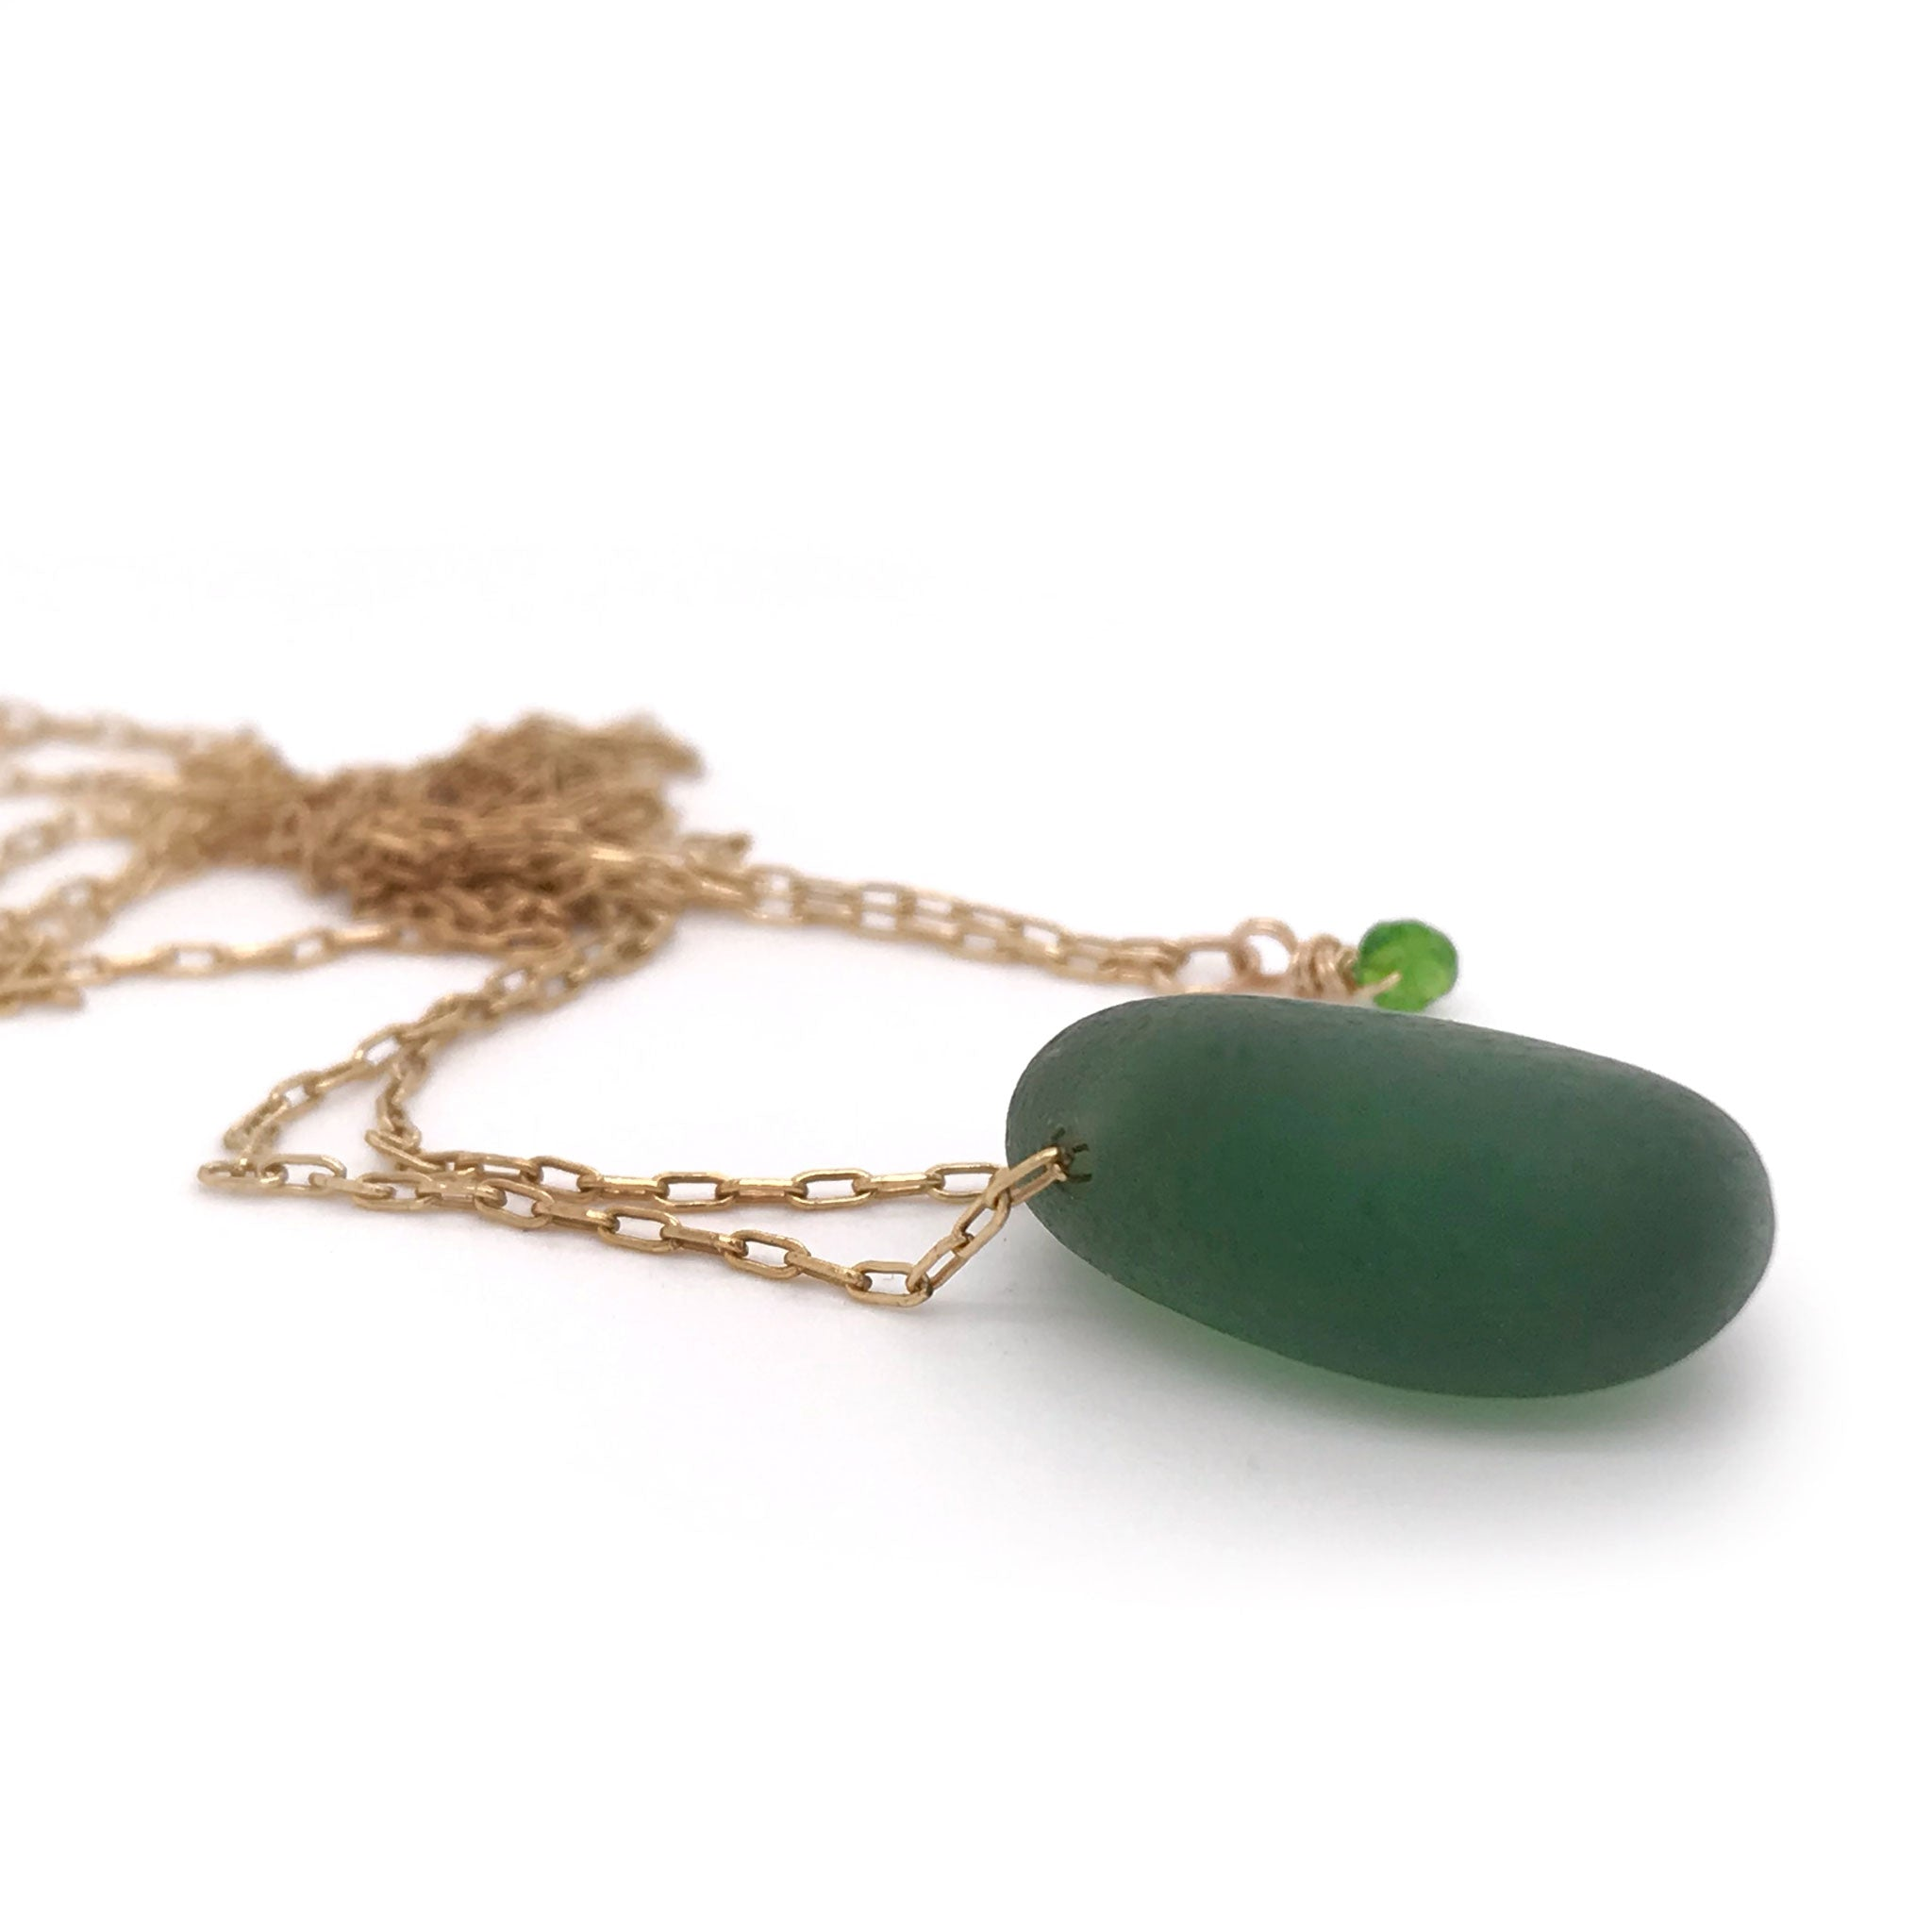 green seaglass on gold necklace Kriket Broadhurst jewellery